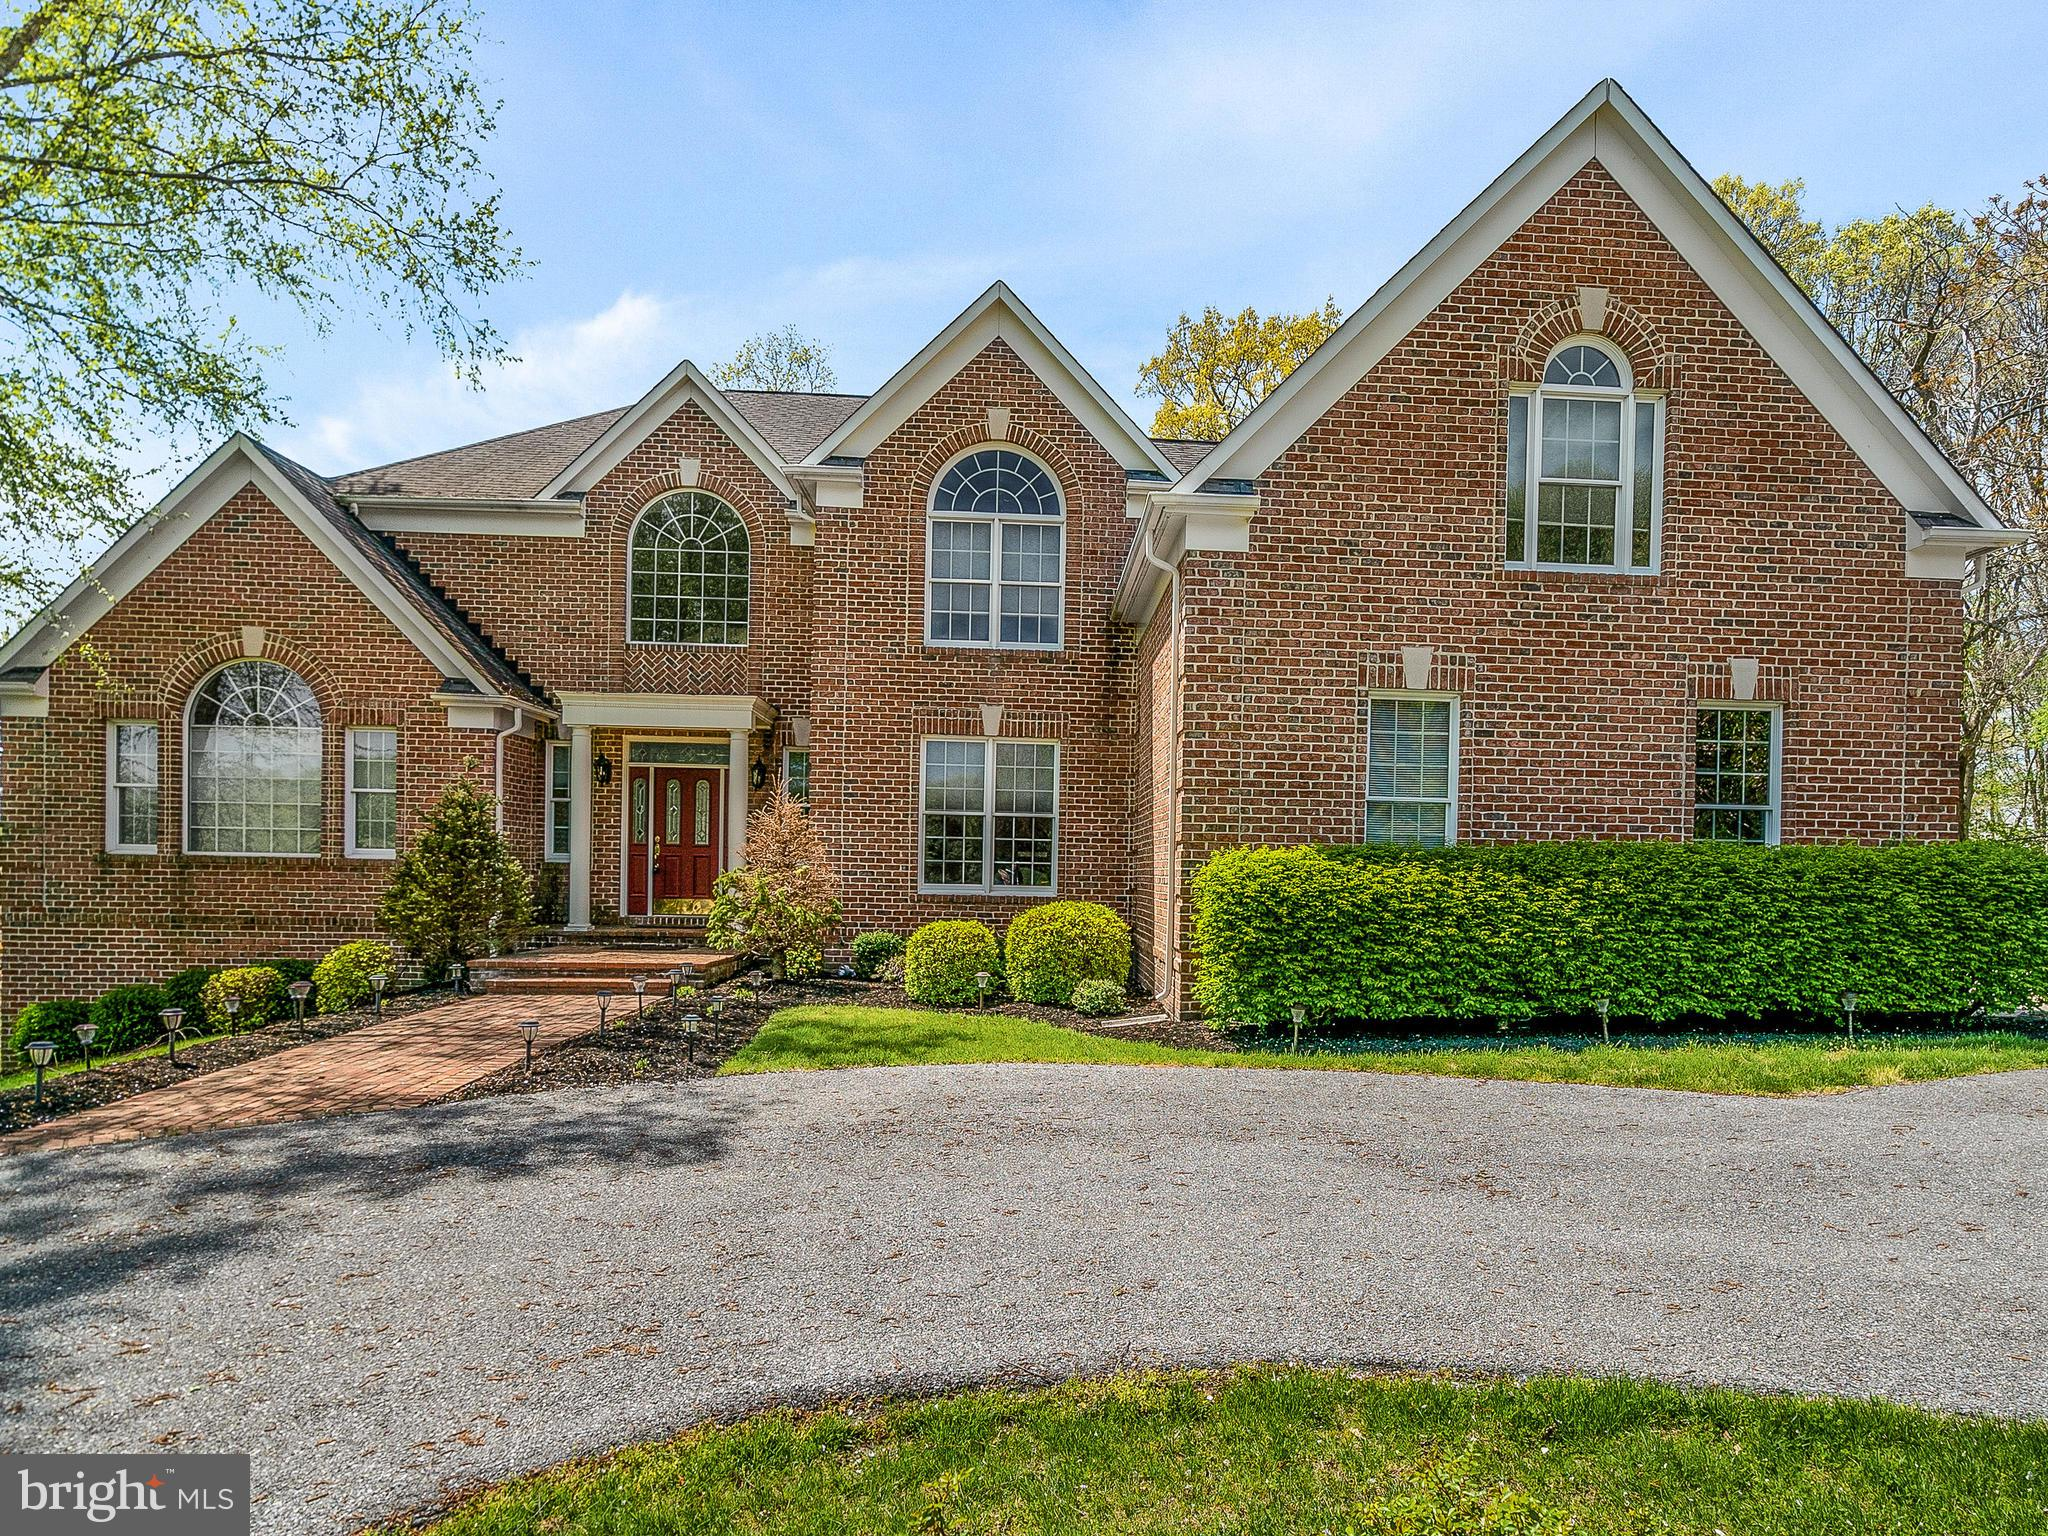 3613 BLACK WALNUT LANE, GLENWOOD, MD 21738